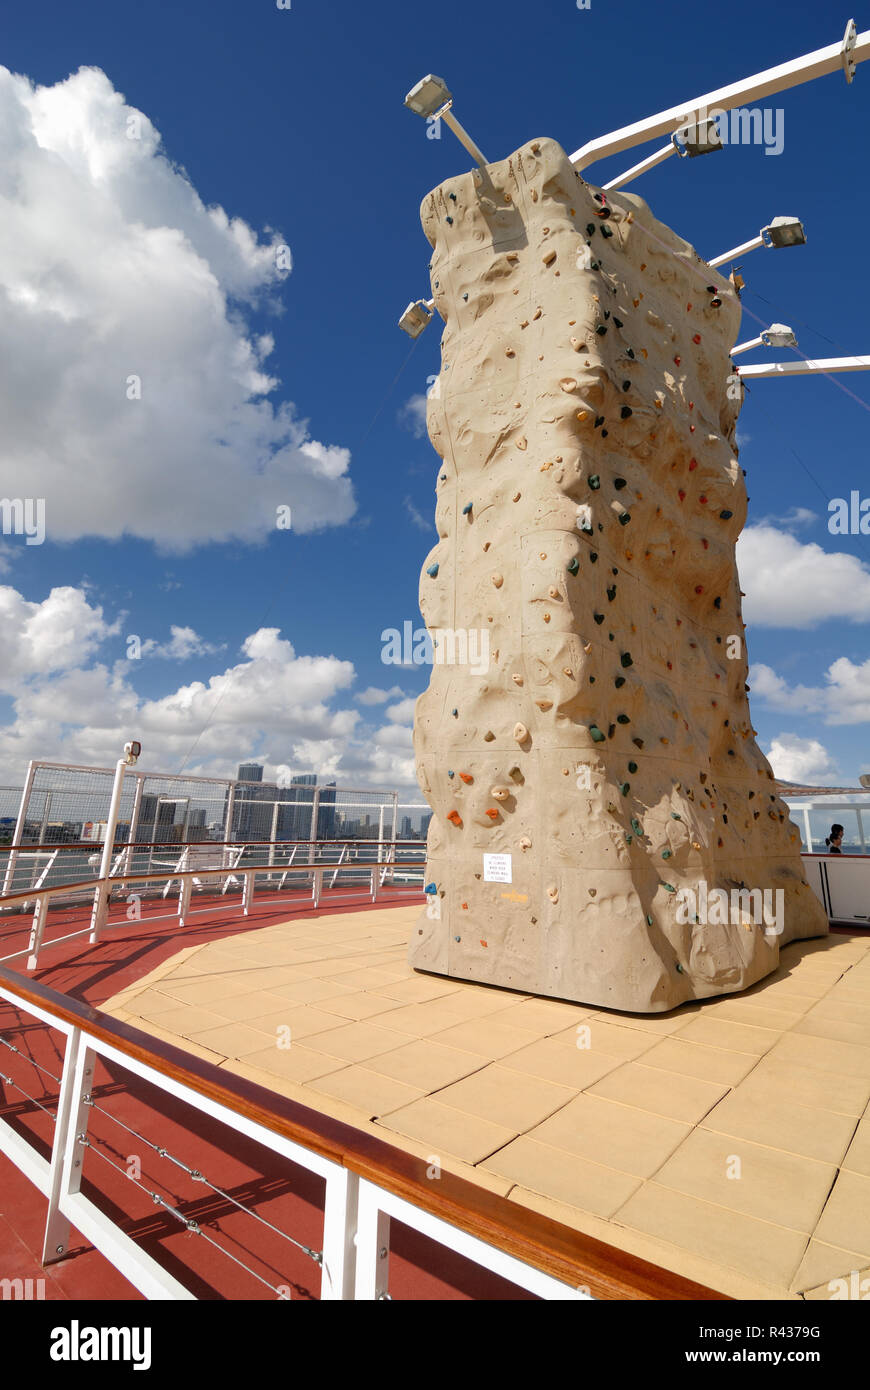 The rock climbing wall on the upper level sports deck of the Majesty of the Seas cruise ship.  The Miami, Florida skyline can be seen in the backgroun - Stock Image